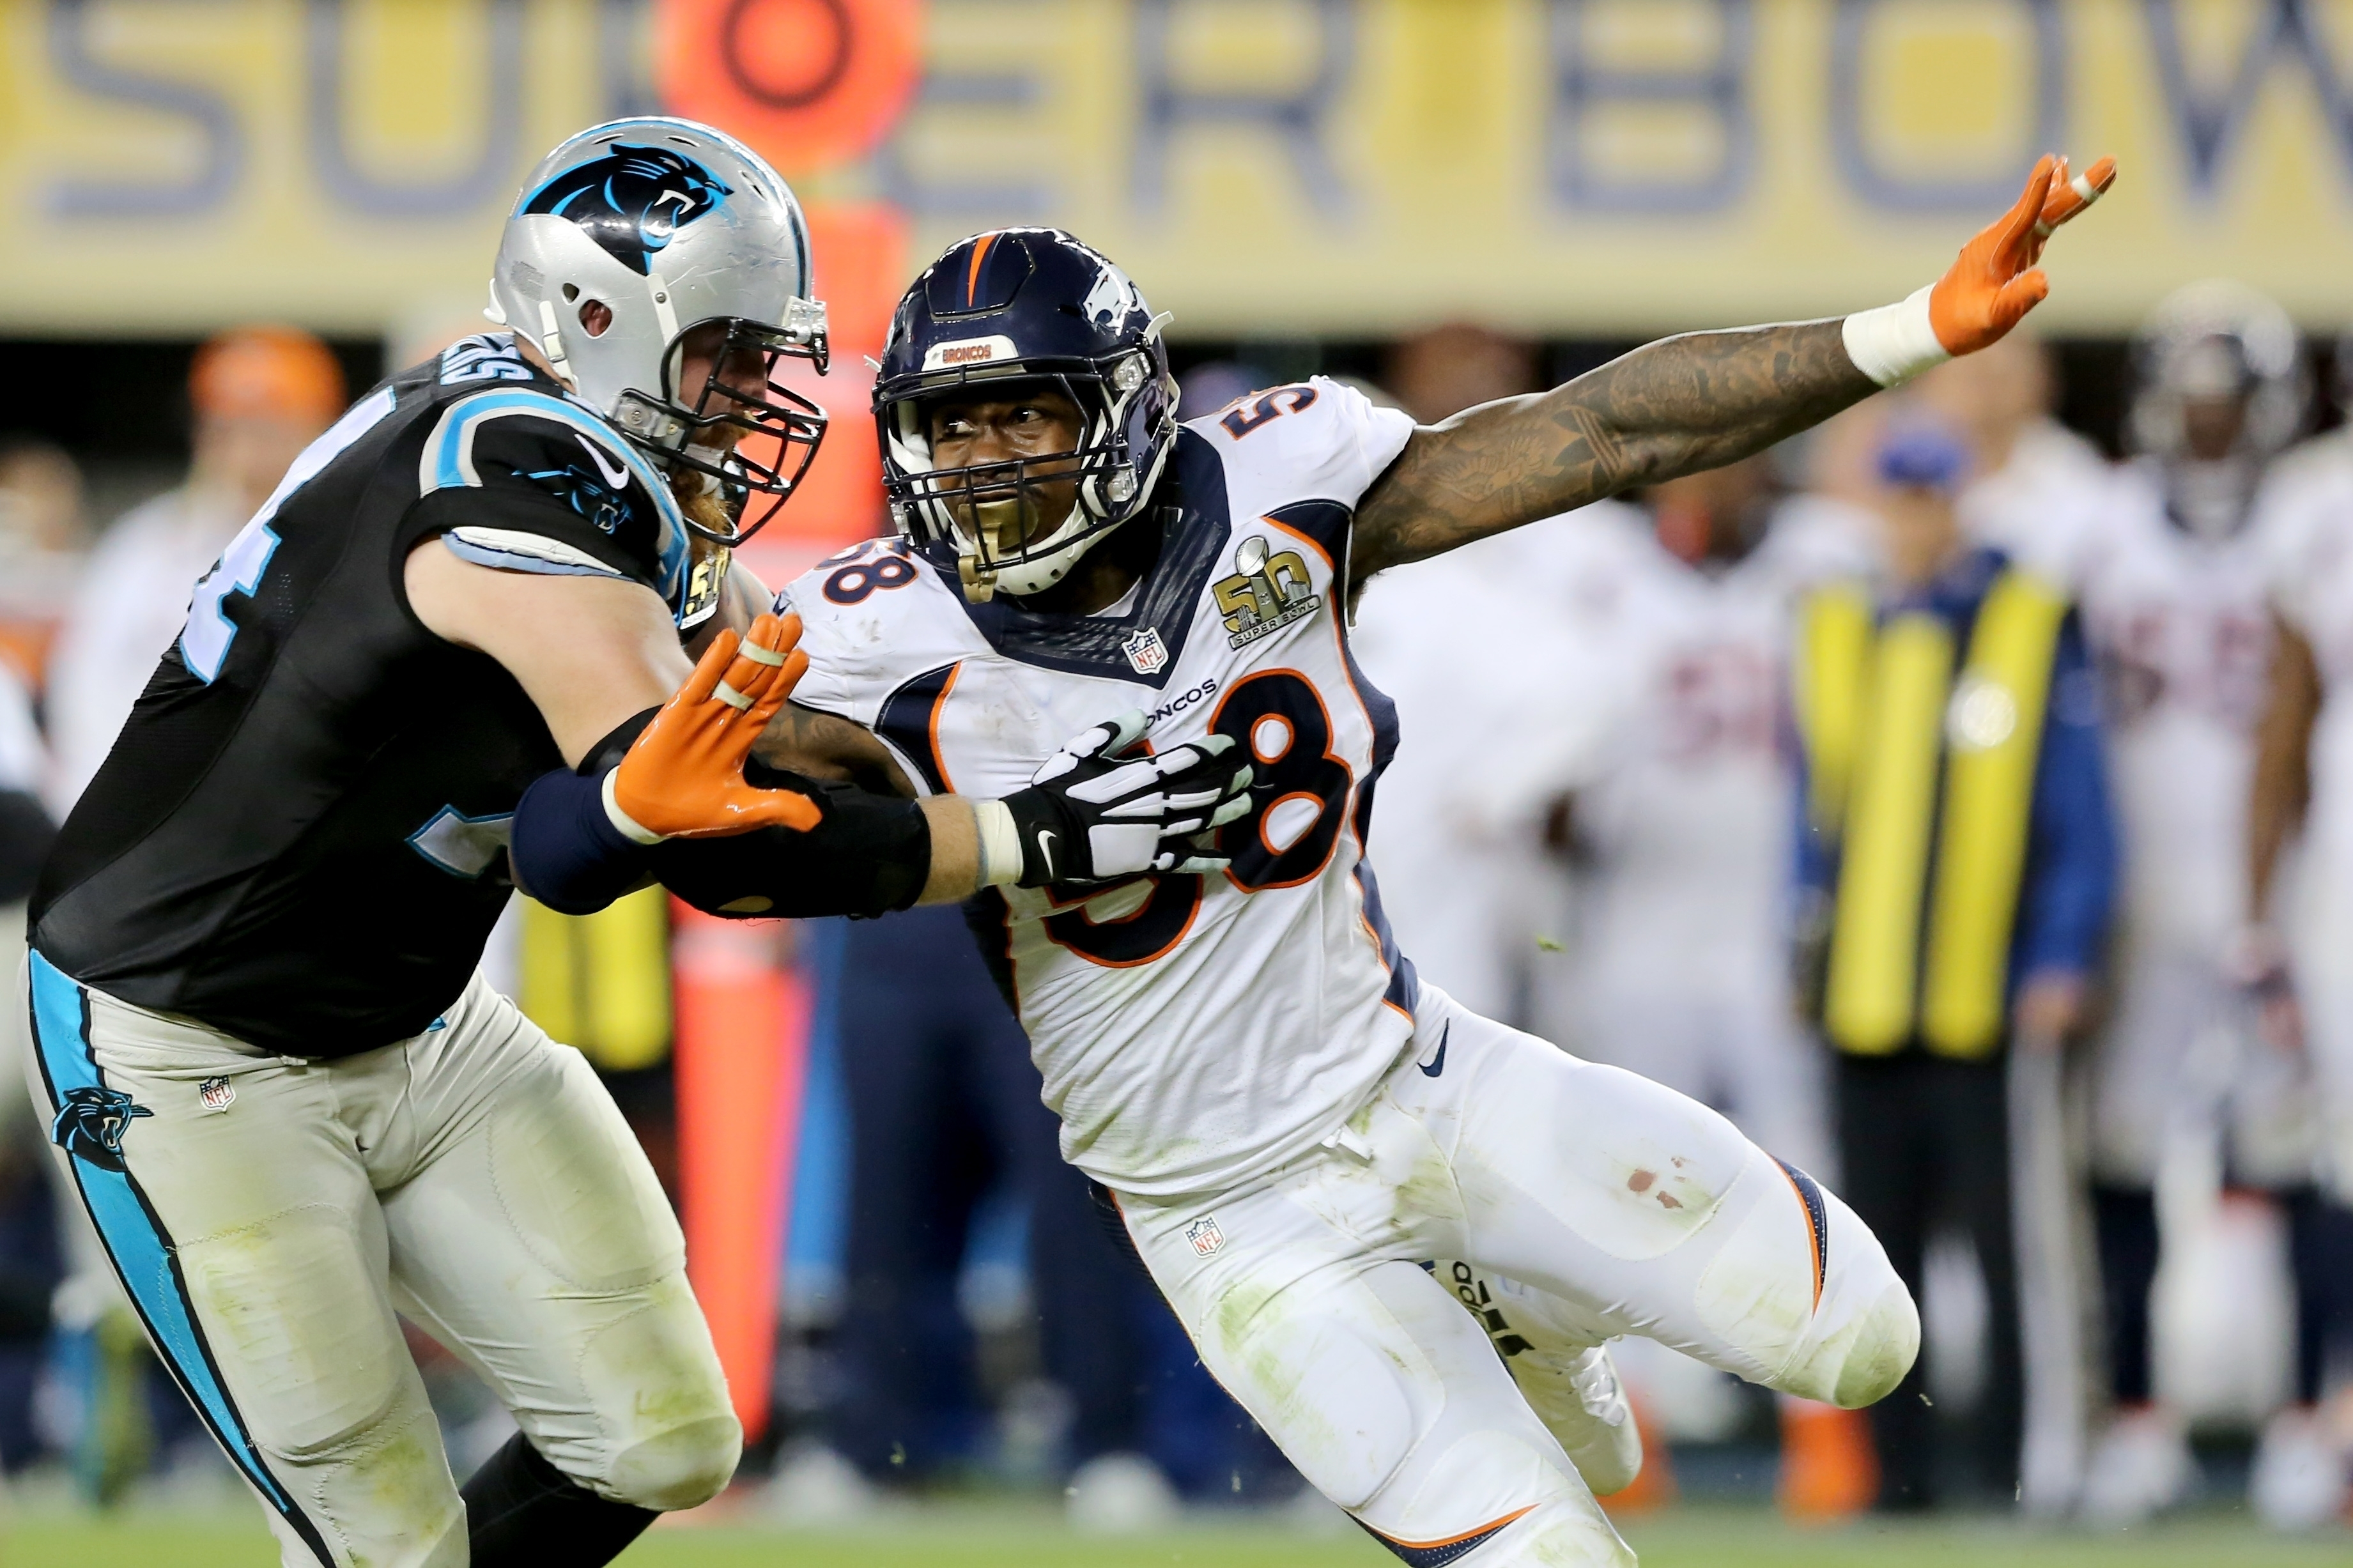 FILE - In this Sunday, Feb. 7, 2016, file photo, Denver Bronco's Von Miller (58) makes an outside rush against the Carolina Panthers' Mike Remmers (74) during the NFL Super Bowl 50 football game in Santa Clara, Calif. Super Bowl MVP Von Miller, who transf